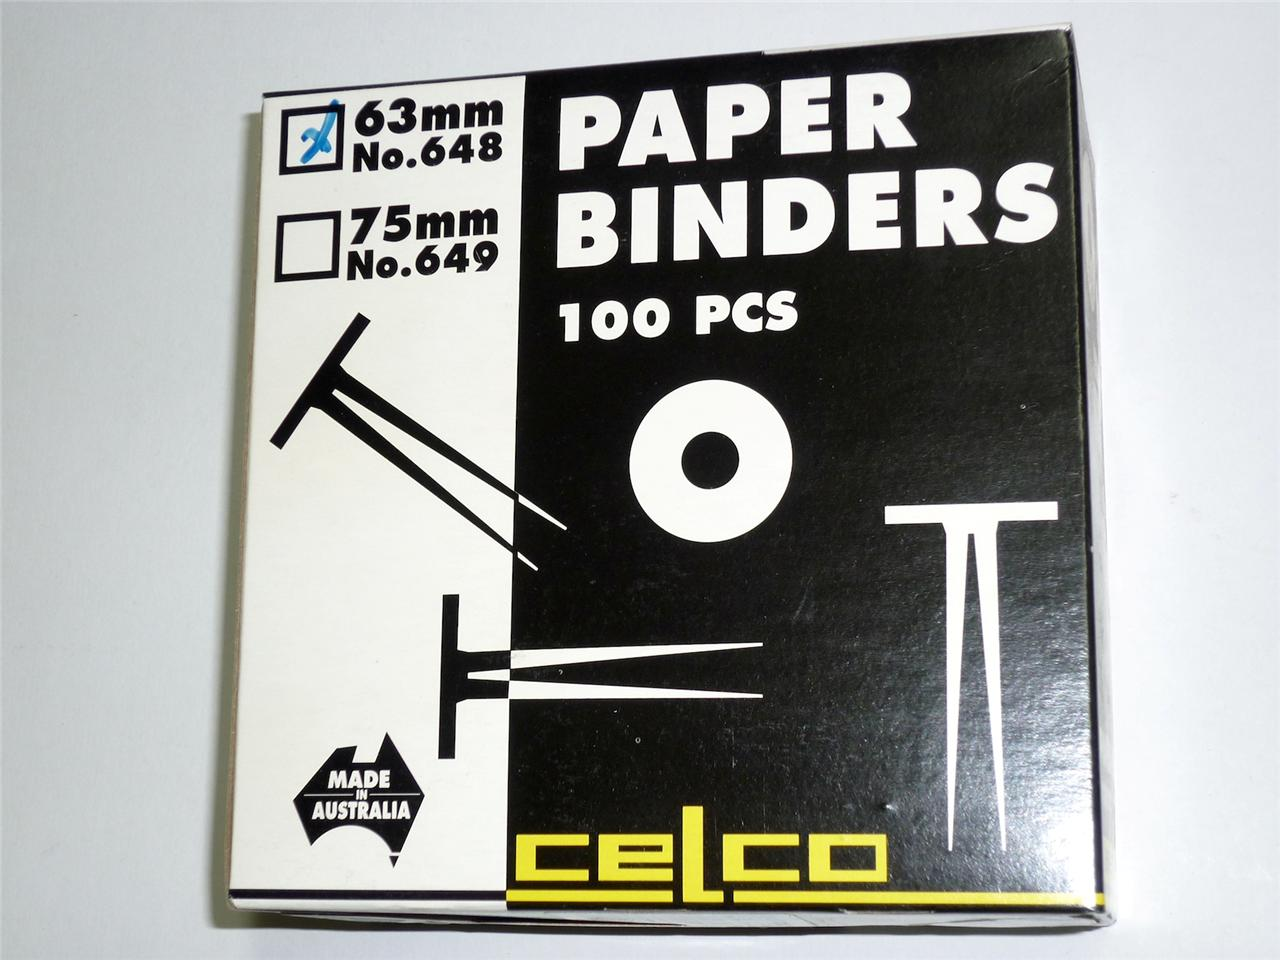 Celco-Paper-Binders-No-648-63mm-box100pcs-silver-metal-for-document-file-binding